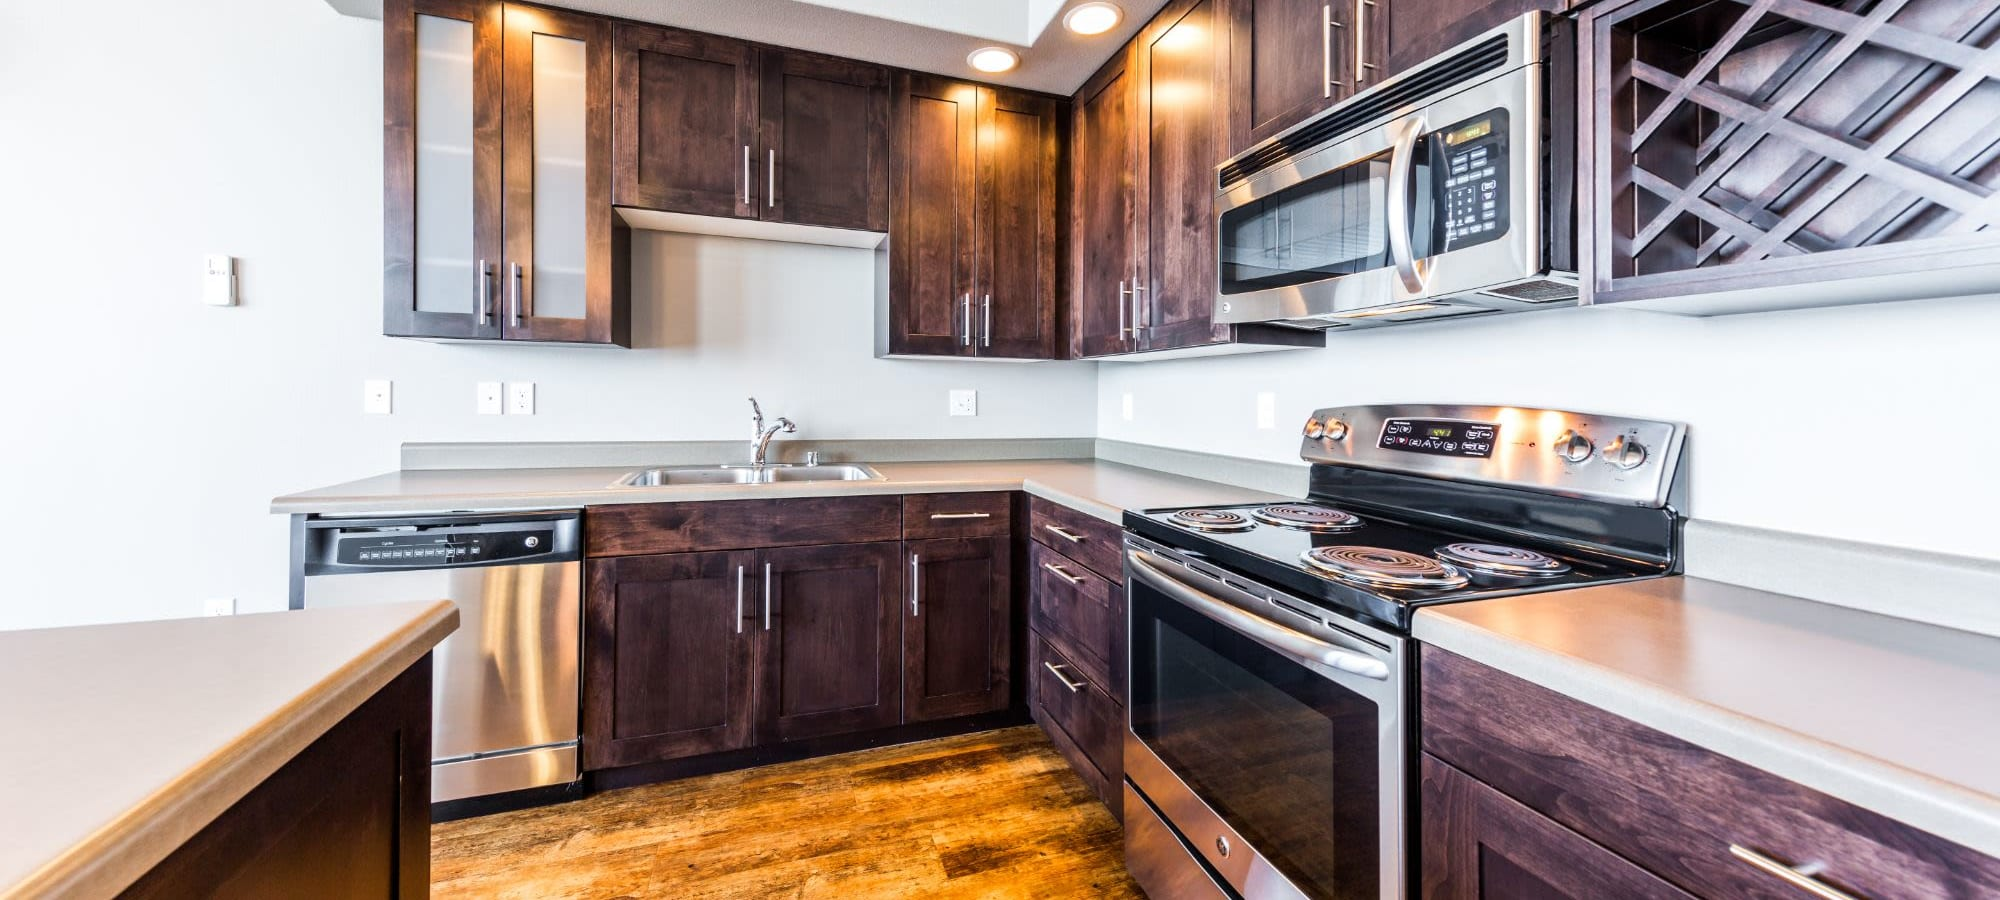 Floor plans at Copperline at Point Ruston in Tacoma, Washington